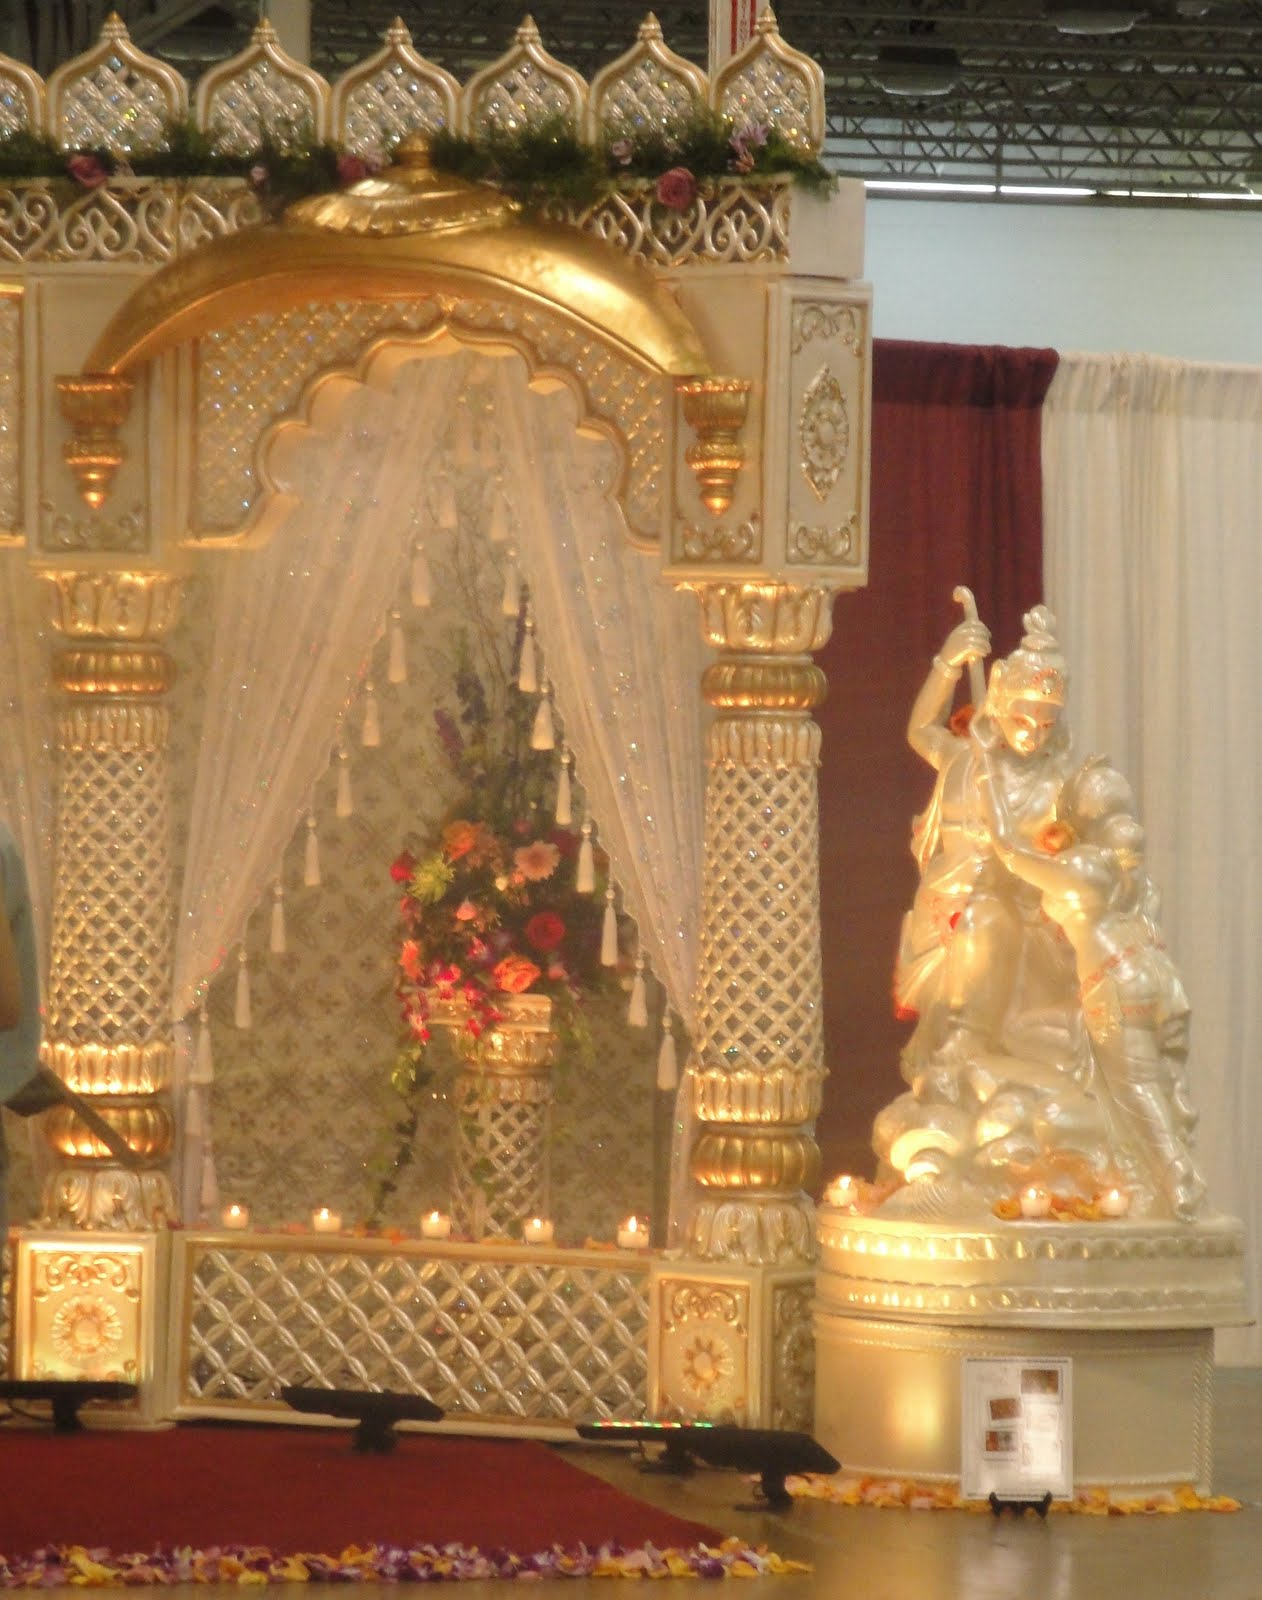 fifth avenue events top picks from indian wedding exhibit s top picks from indian wedding exhibit s bridal show